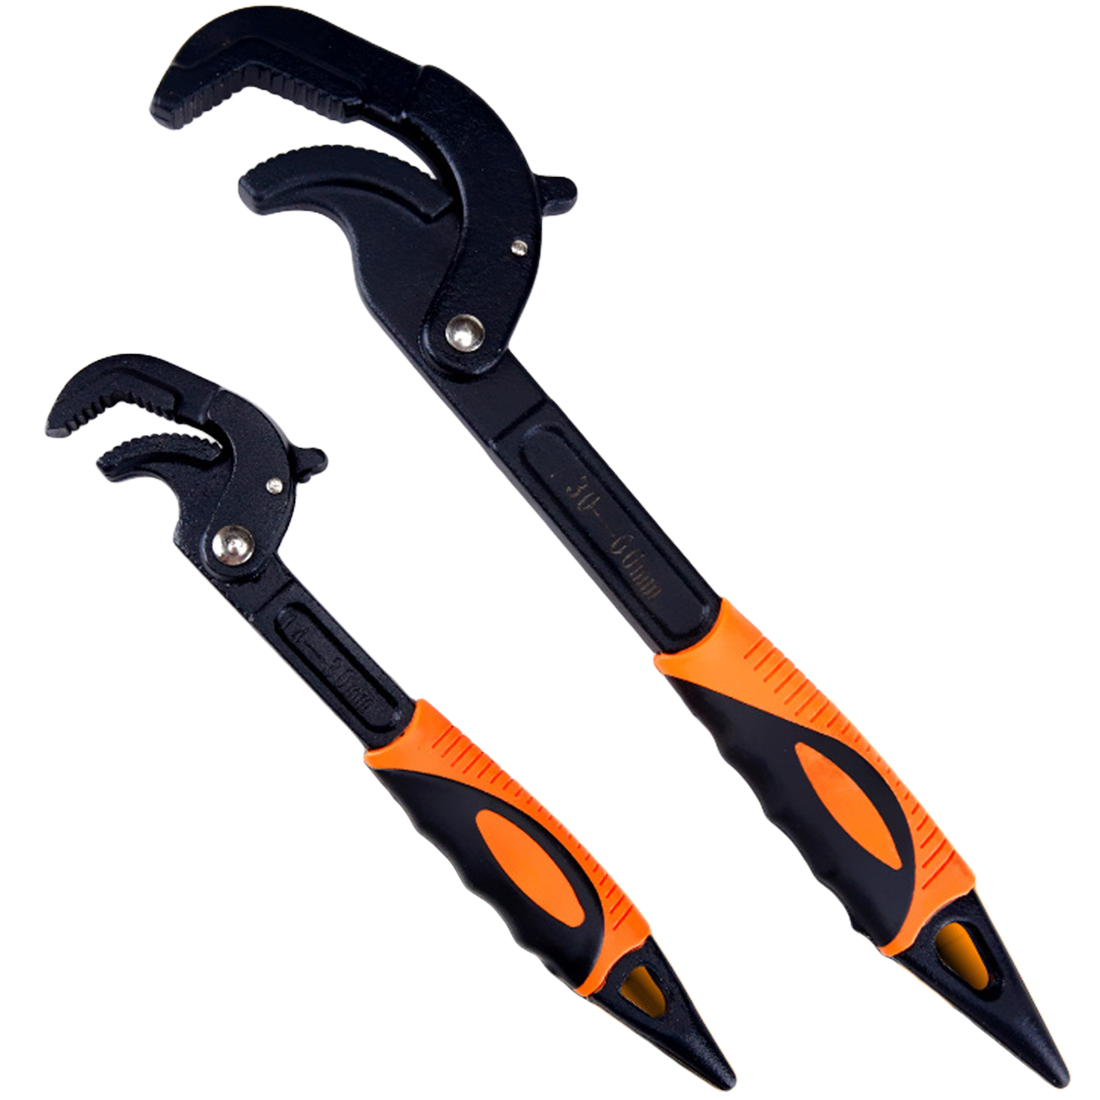 Universal Open End High Carbon Steel Snap and Grip Spanner Set